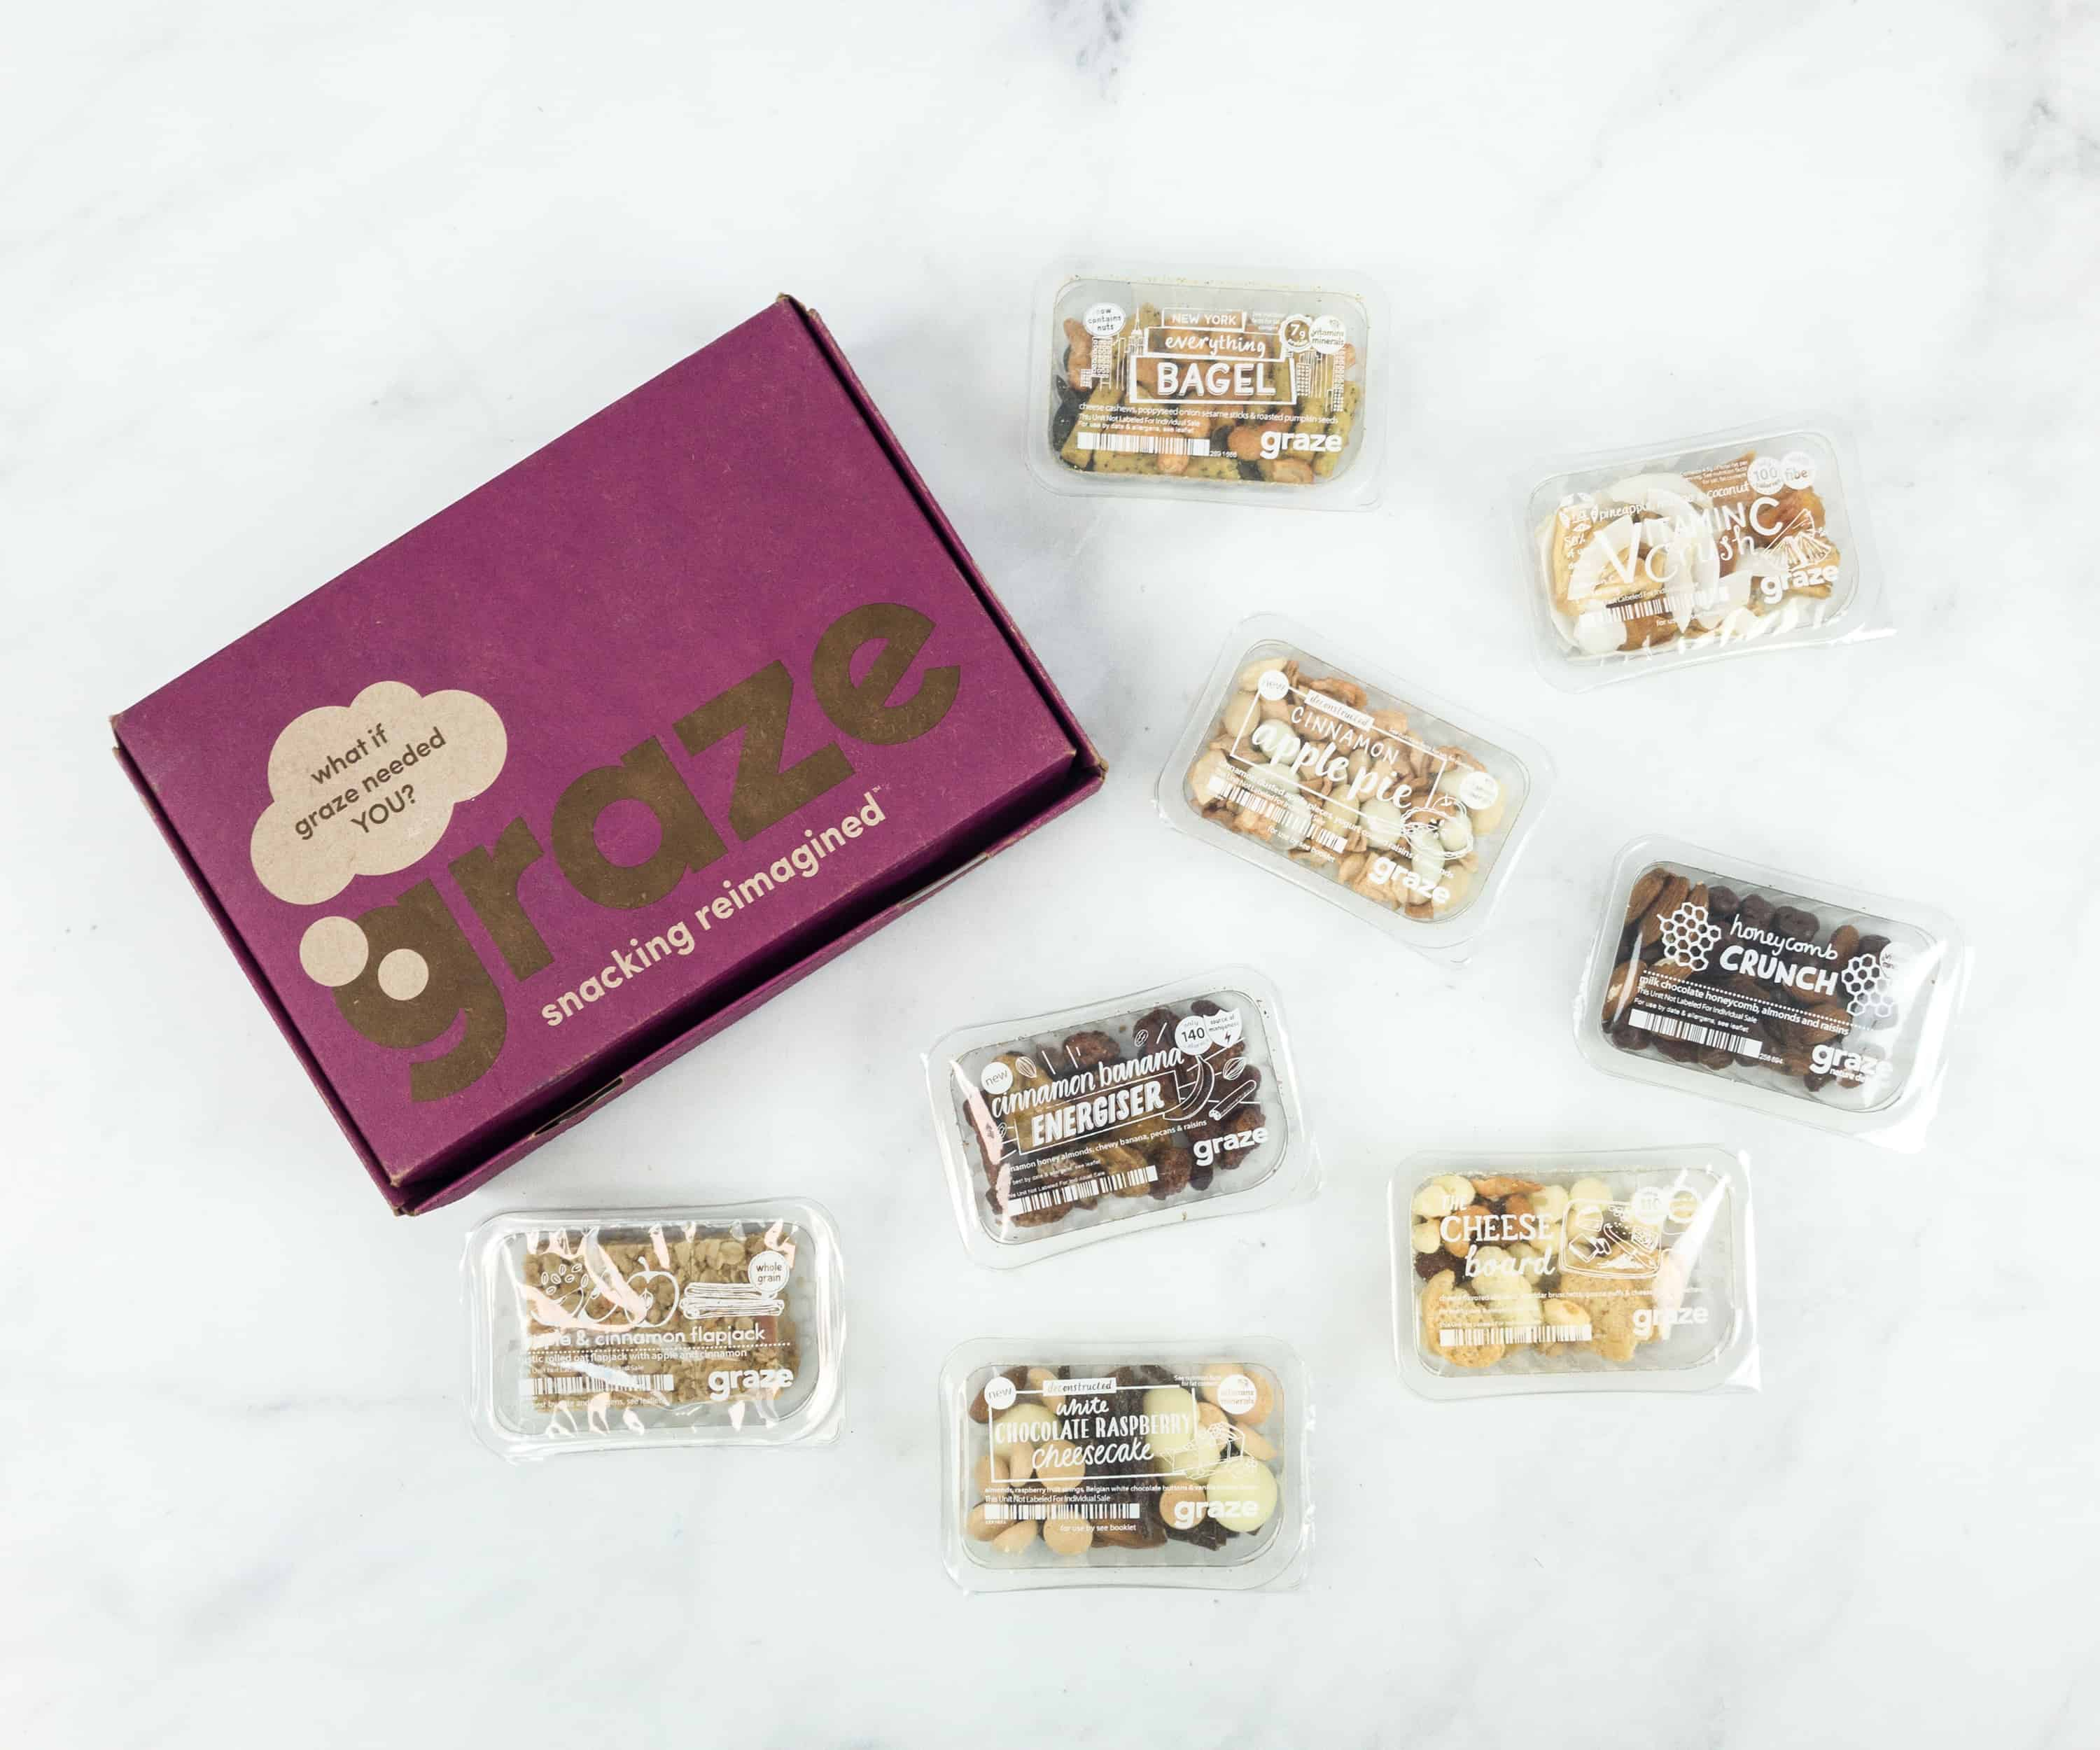 Graze Variety Box Review & Free Box Coupon – December 2018